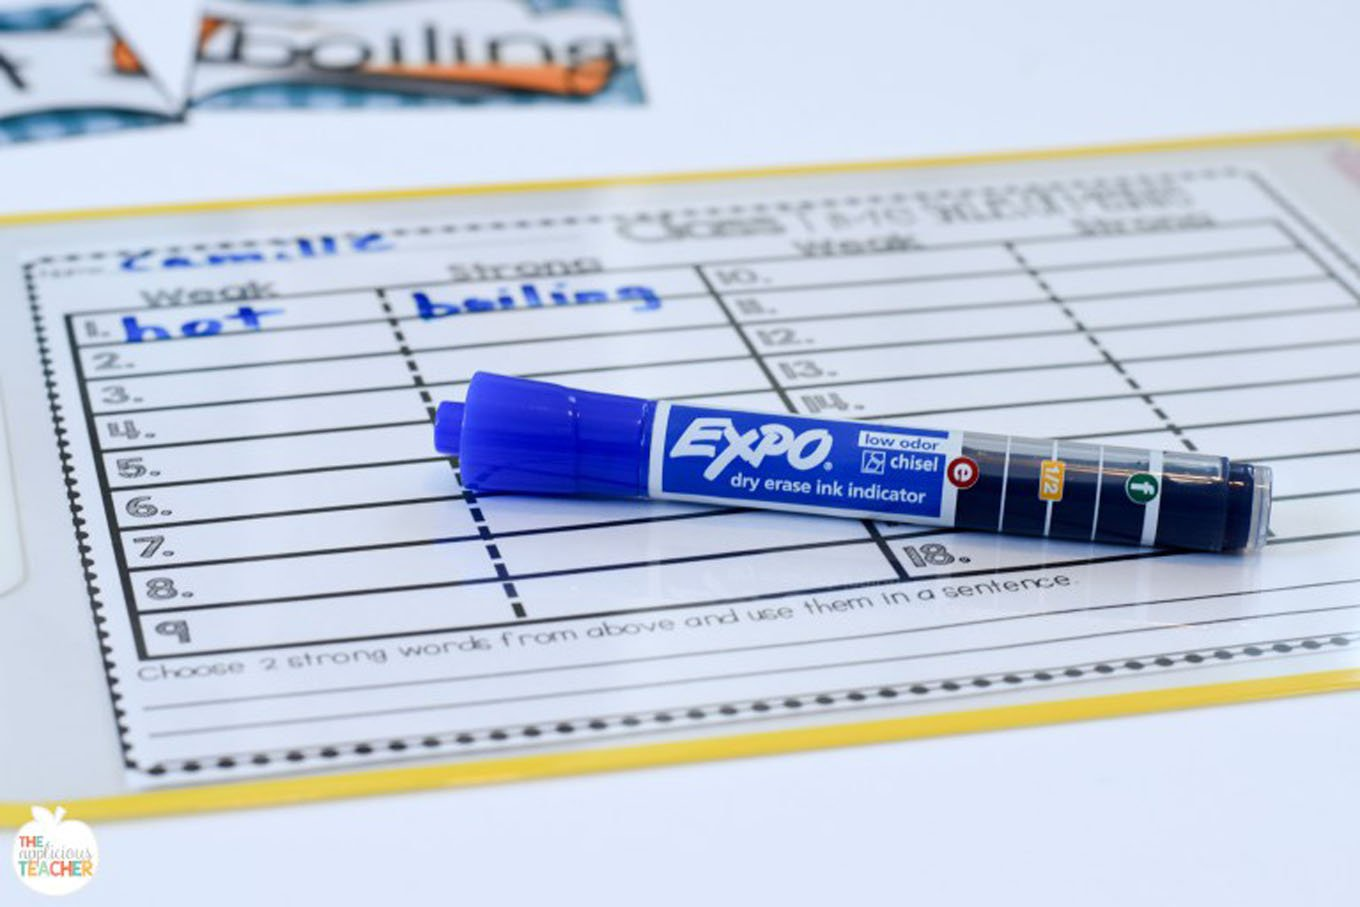 expo-placemat-checklist-written-in-blue-ink-indicator-expo-marker.jpg